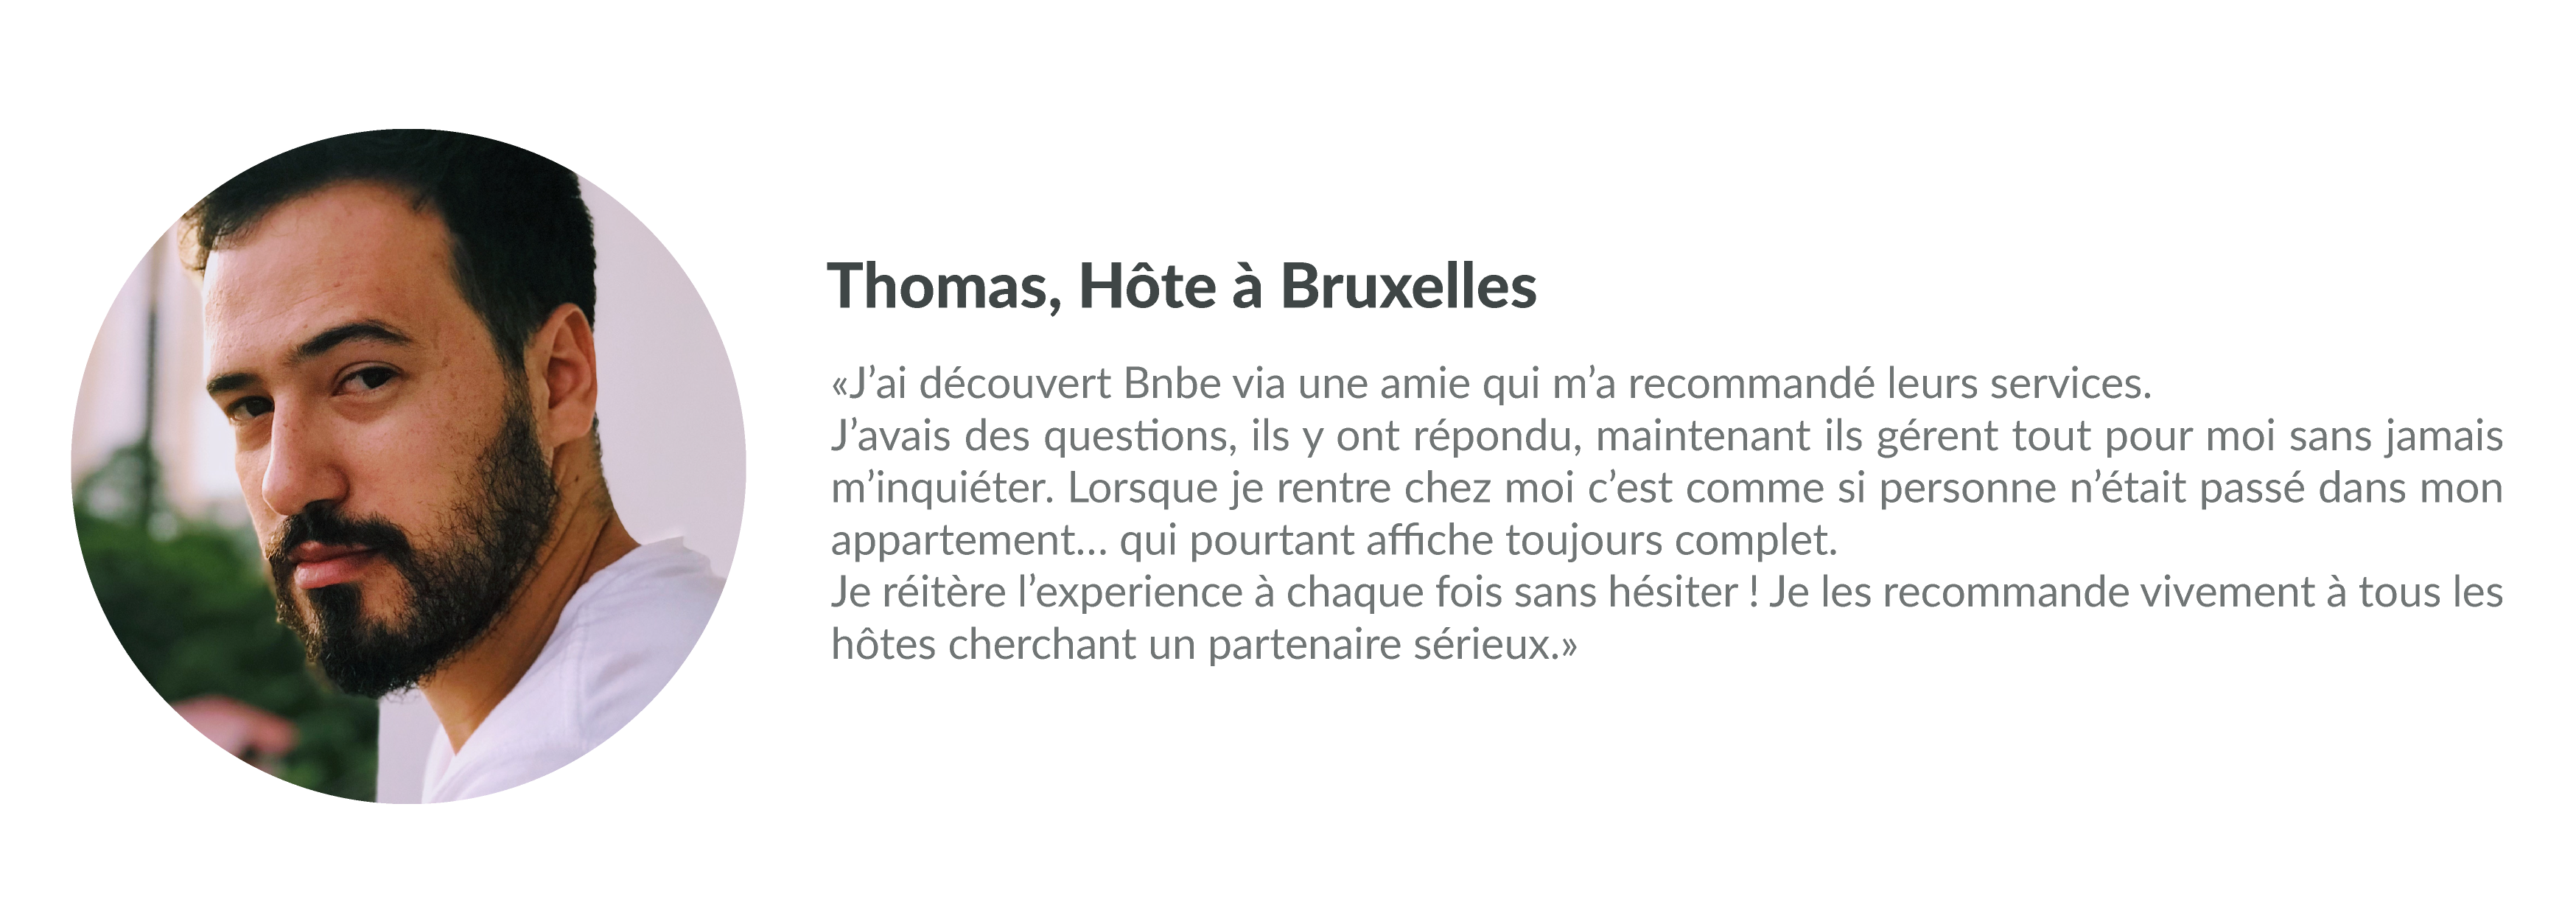 Commentaire-Thomas-Bnbe.3